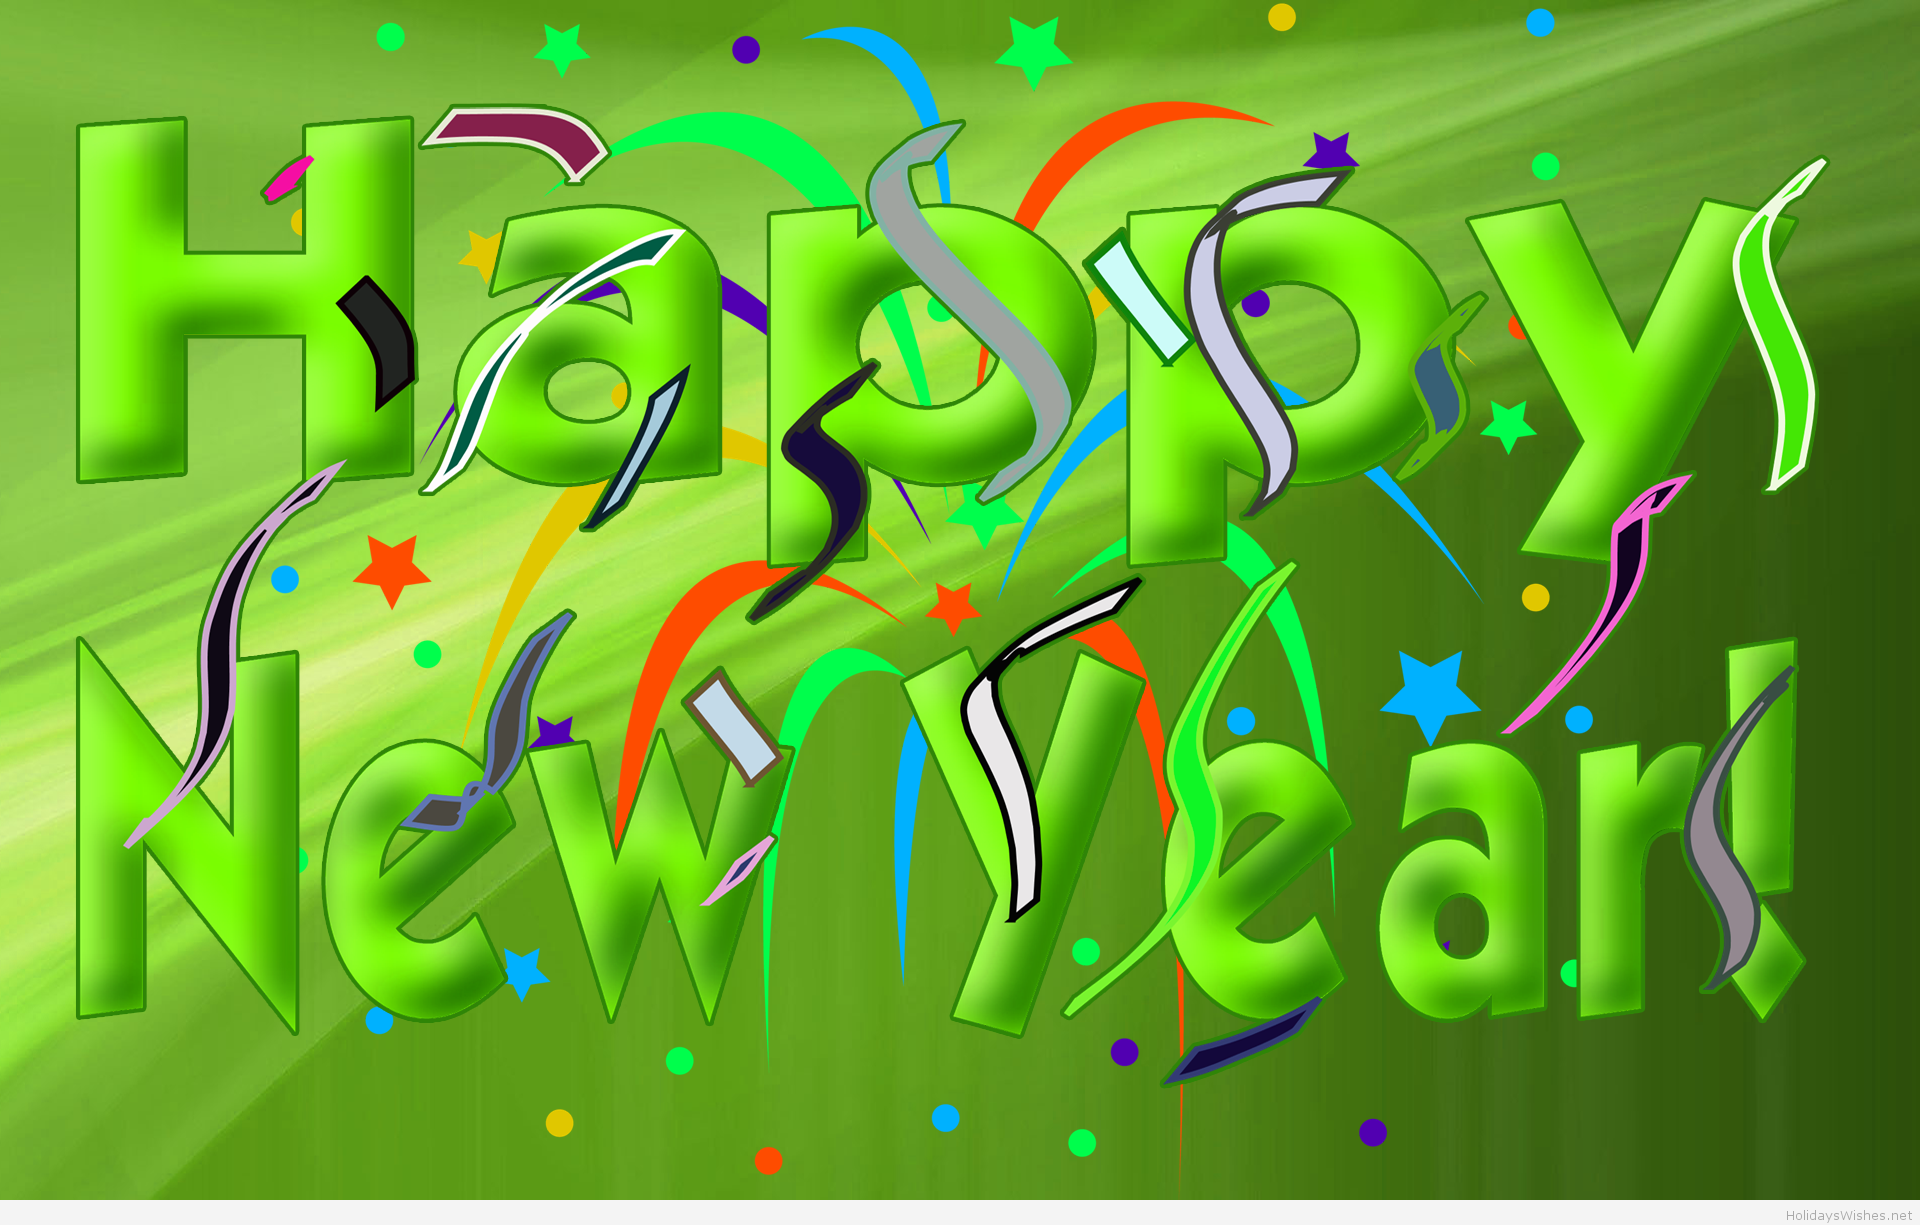 happy new year 2015 full hd wallpaper for pc - drive